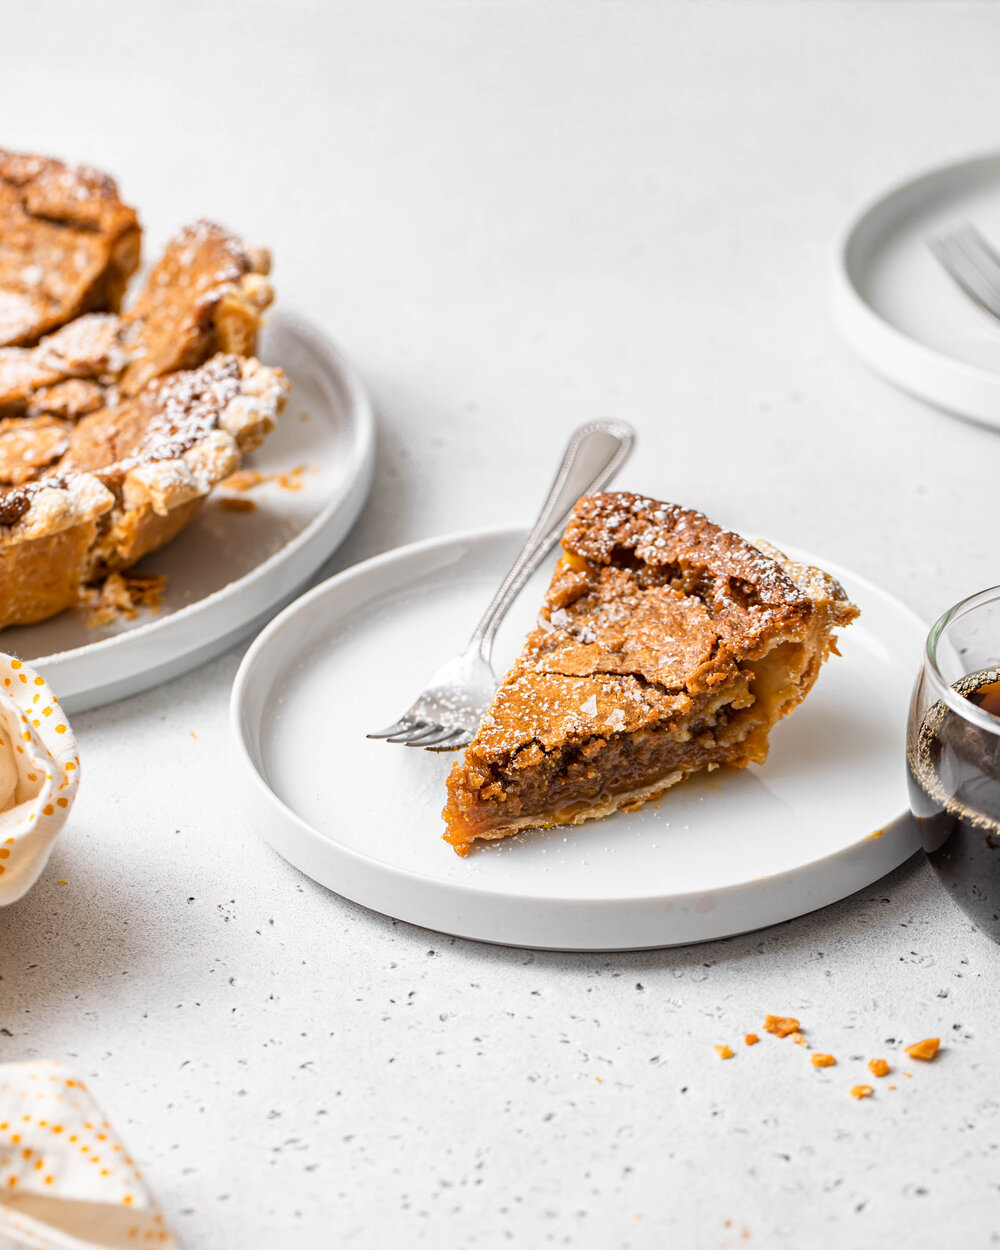 Slice of maple sugar pie with flaky crust and gooey brown sugar filling.